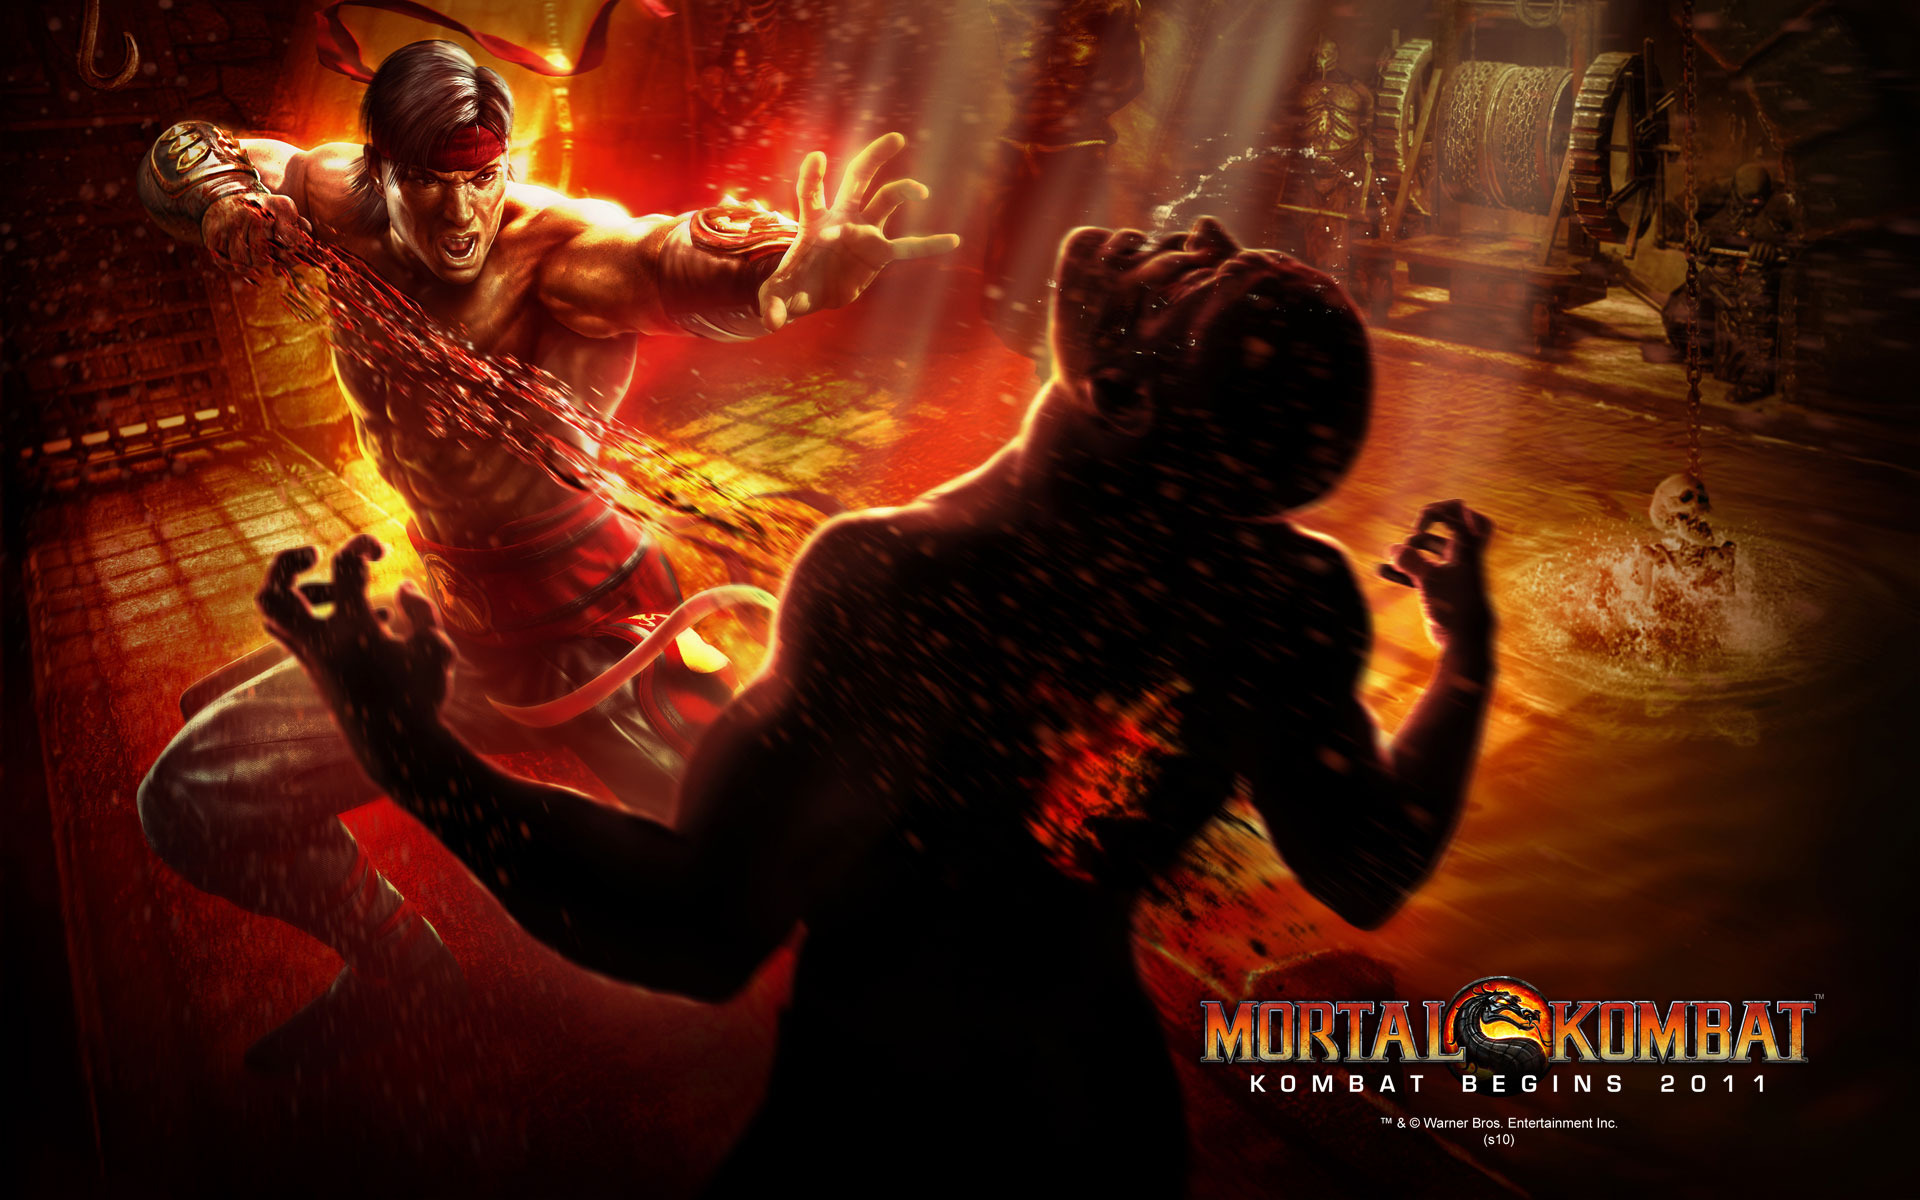 Mortal Kombat wallpaper Liu Kang